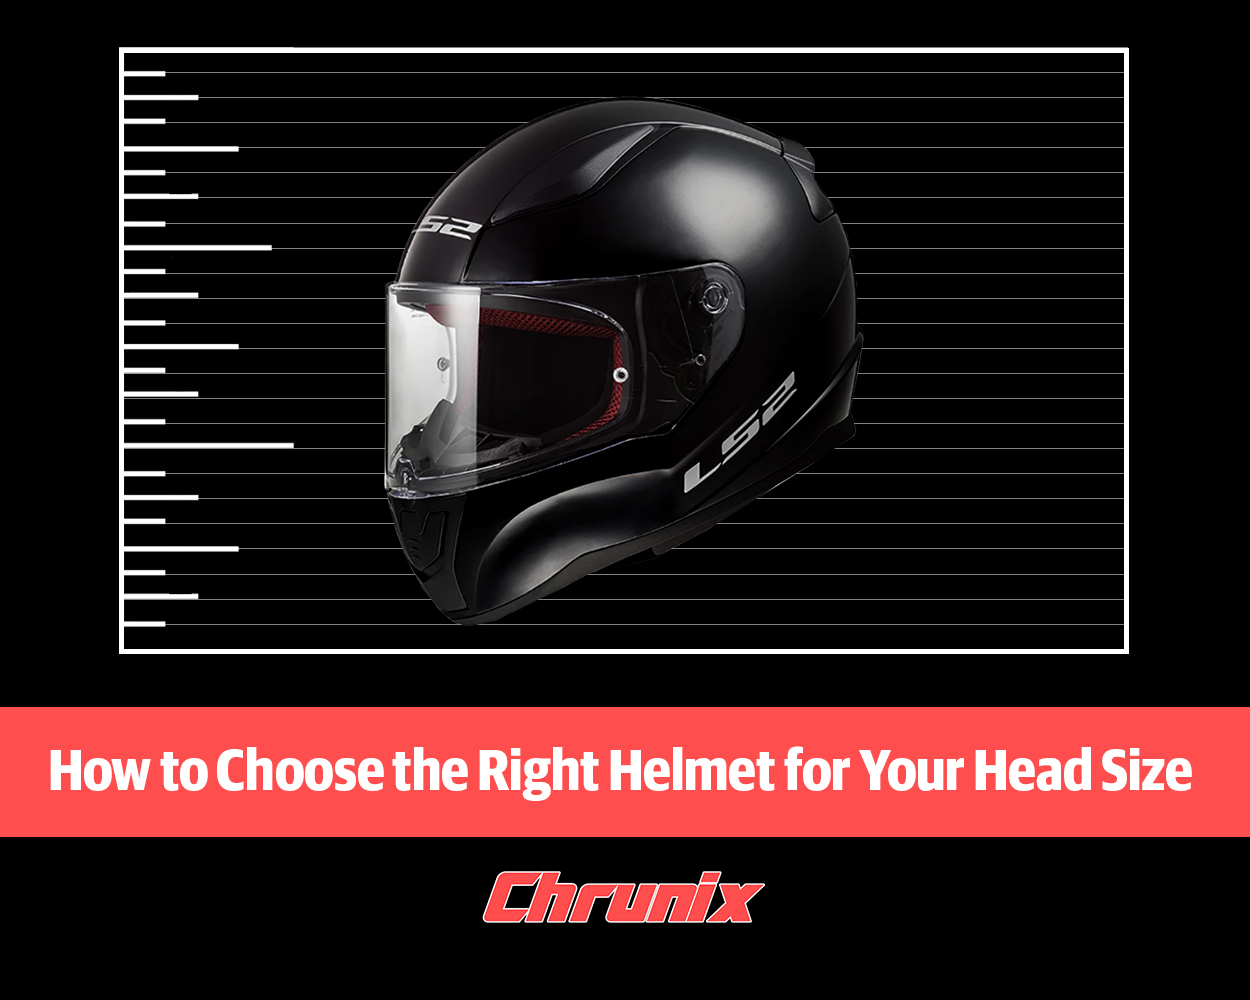 How to Choose the Right Helmet for Your Head Size